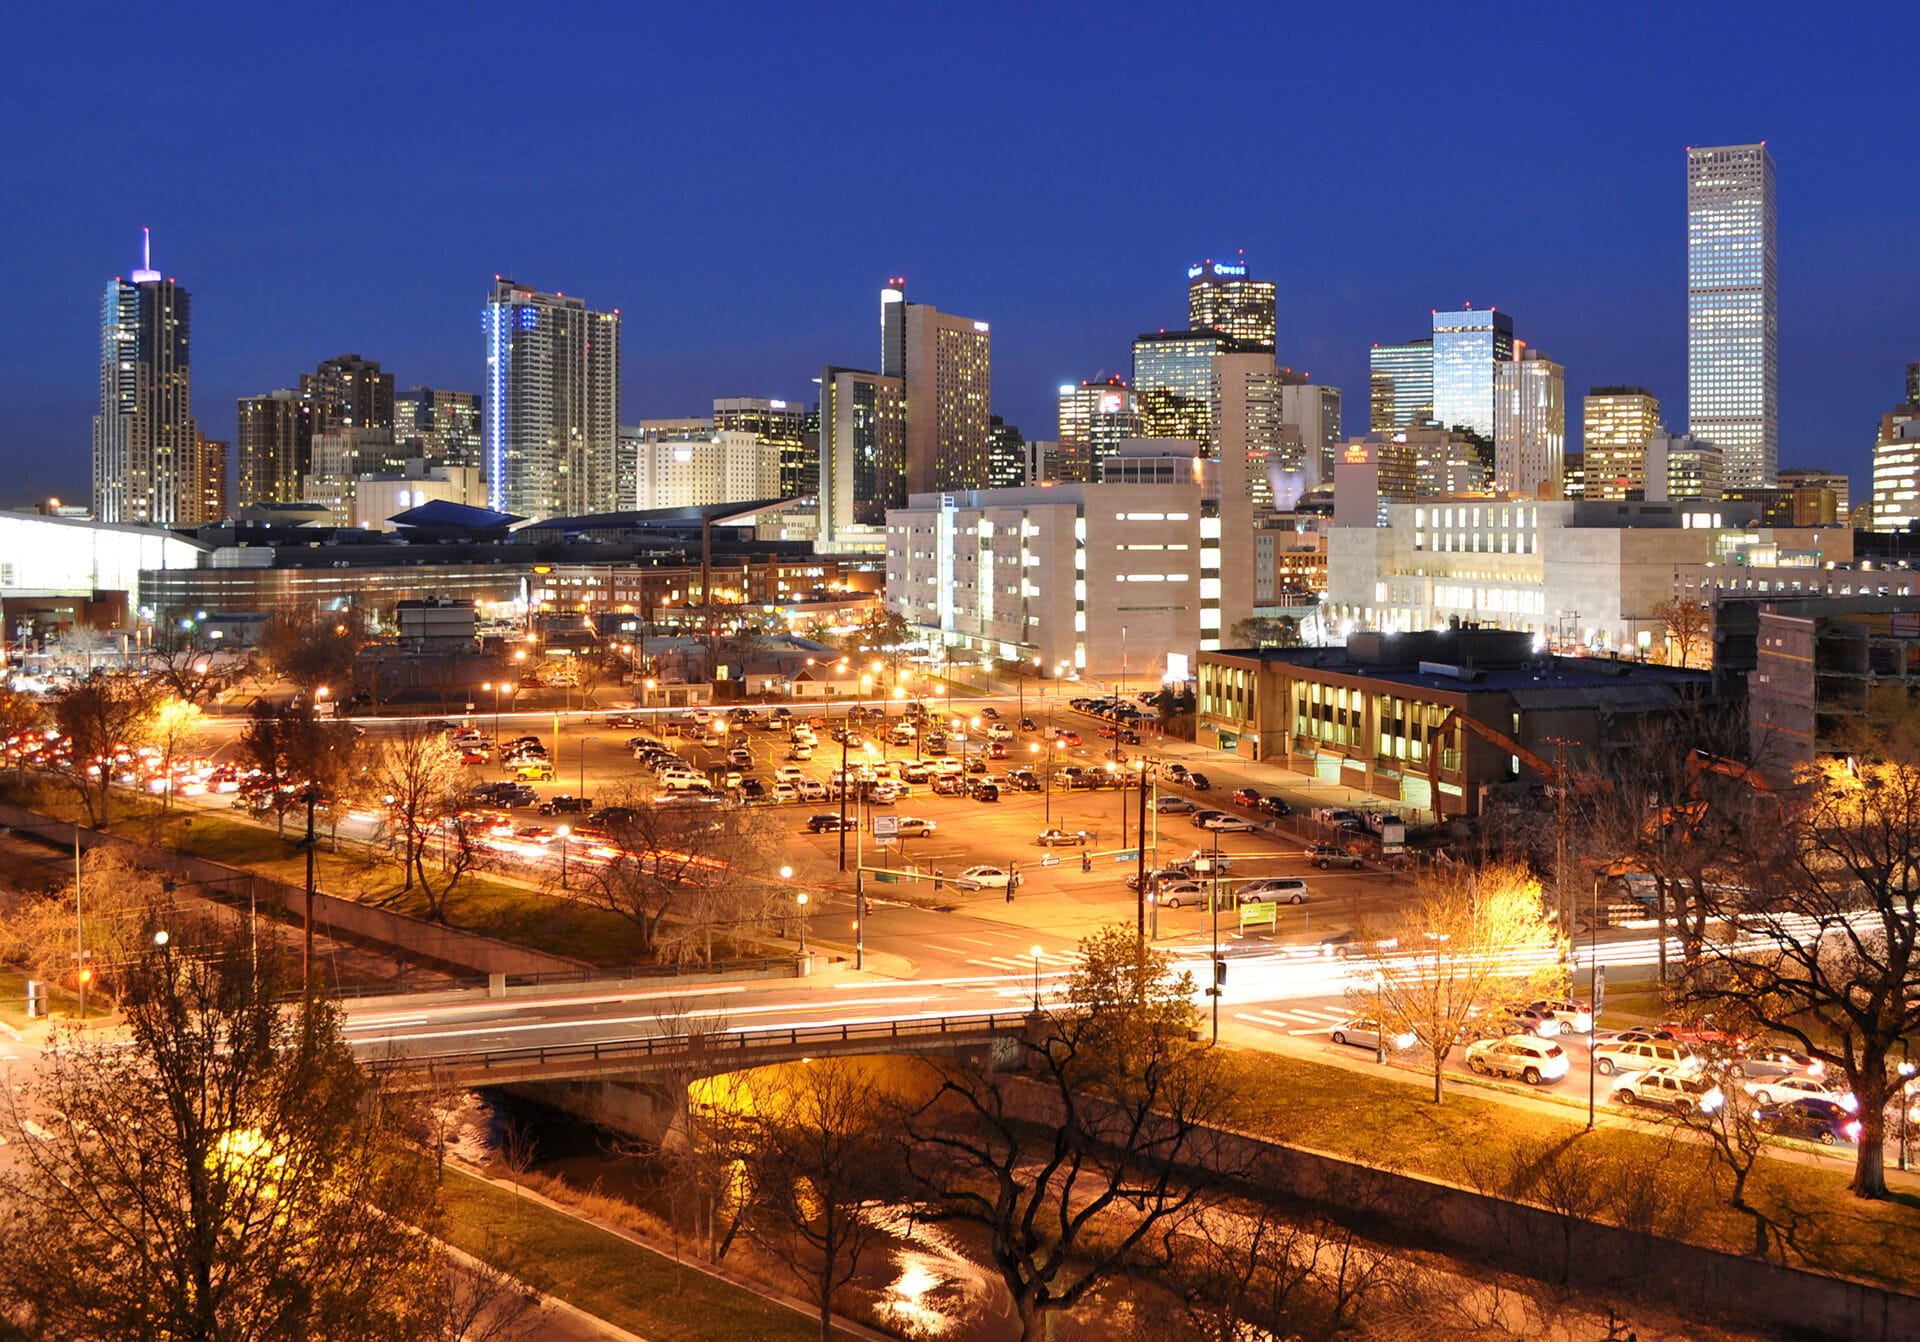 Denver Citylife at Night